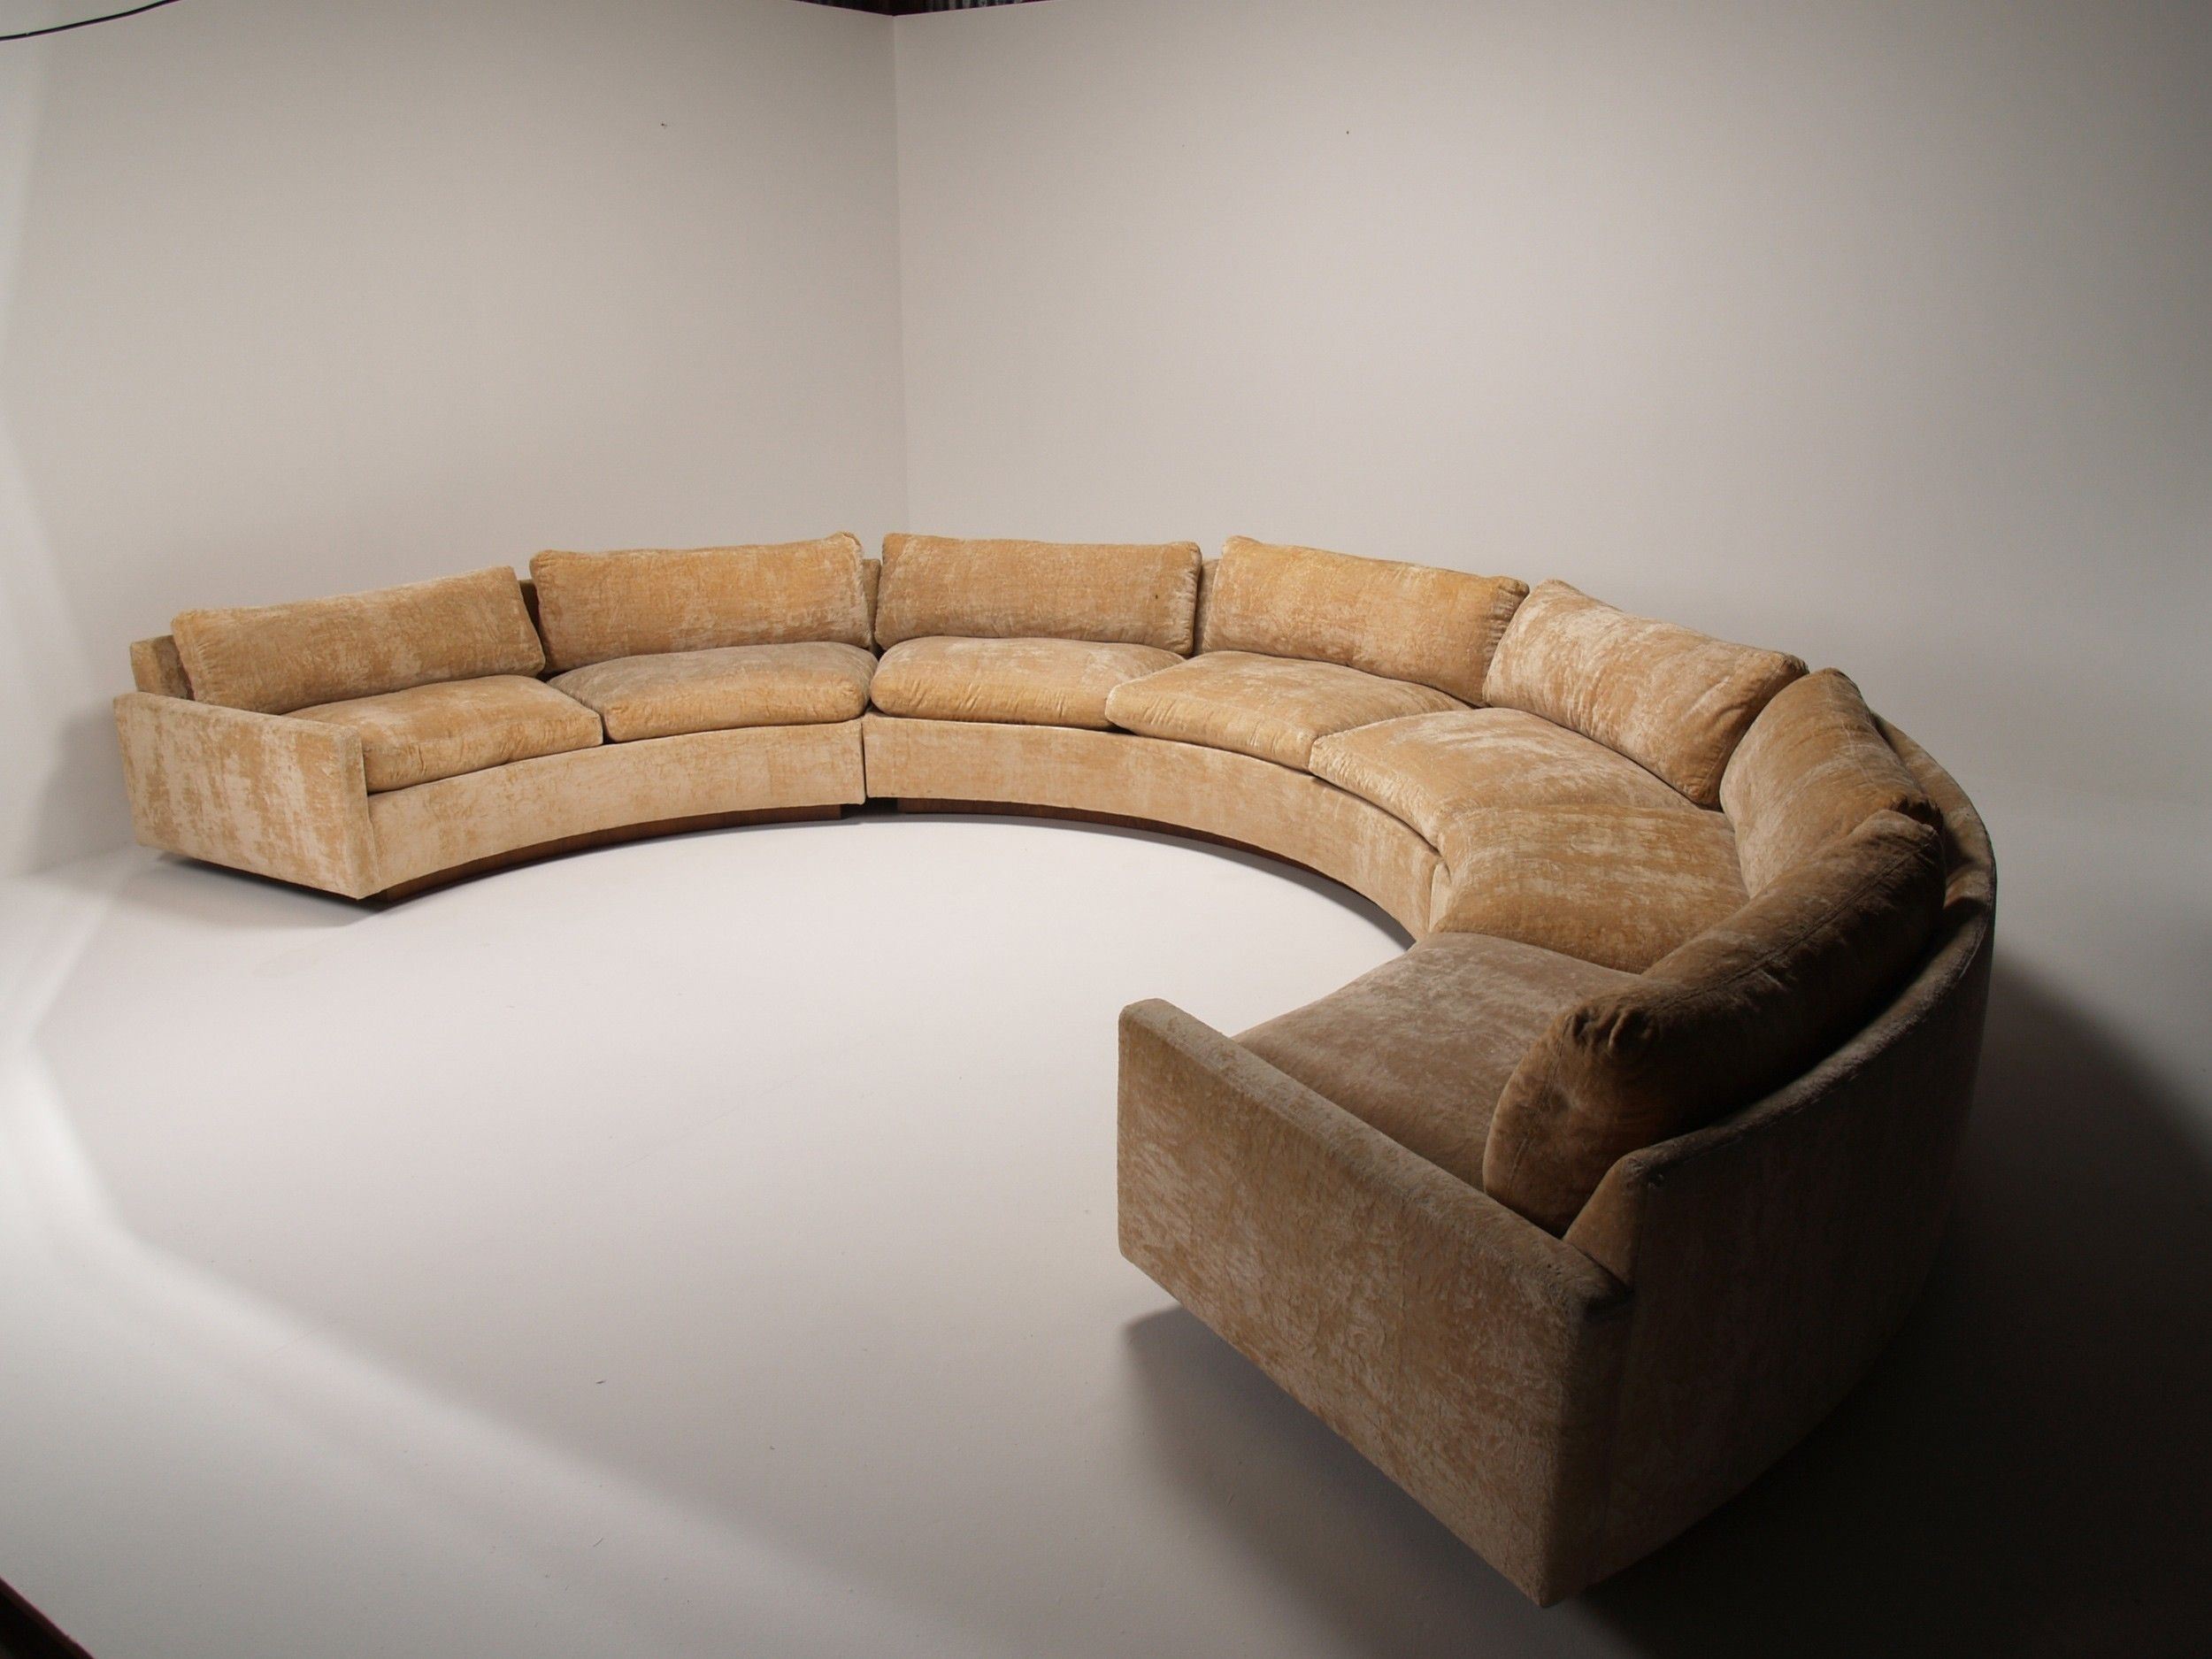 Circular Loveseat Sofa | Curved Sectional | Small Curved Couch Within Round Sectional Sofas (Image 3 of 10)